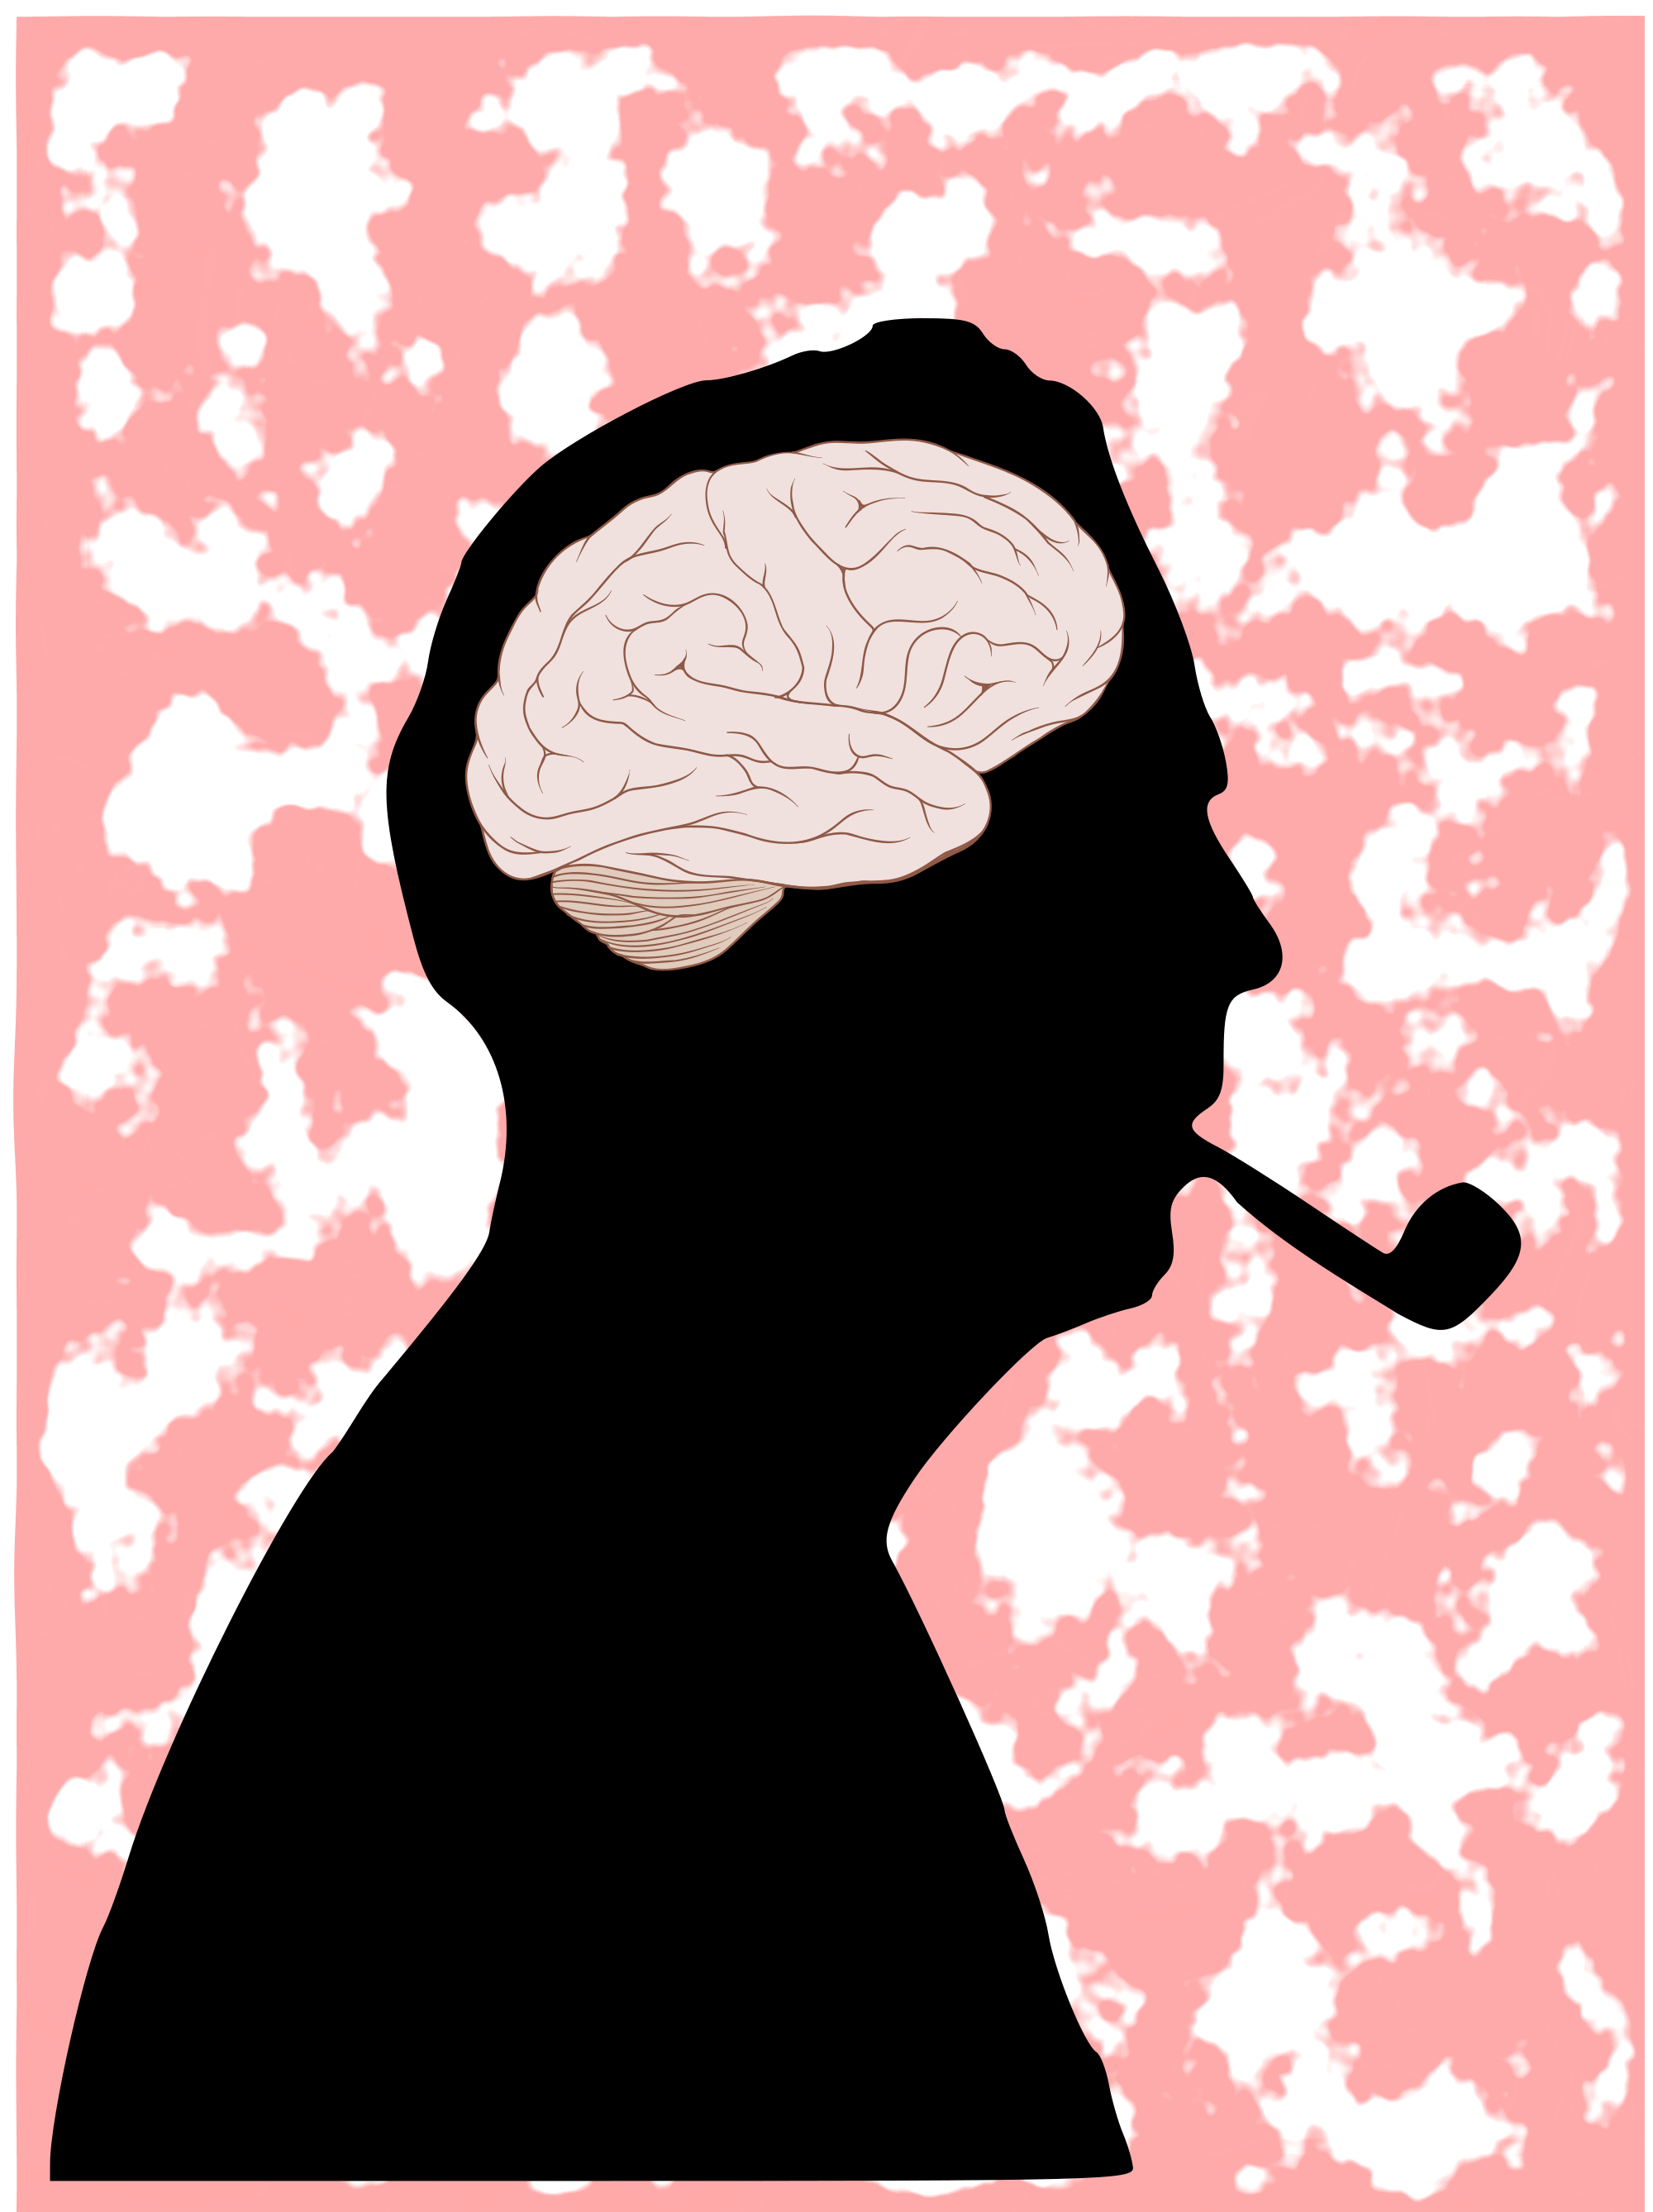 Psychology clipart gear brain. File mr pipo svg